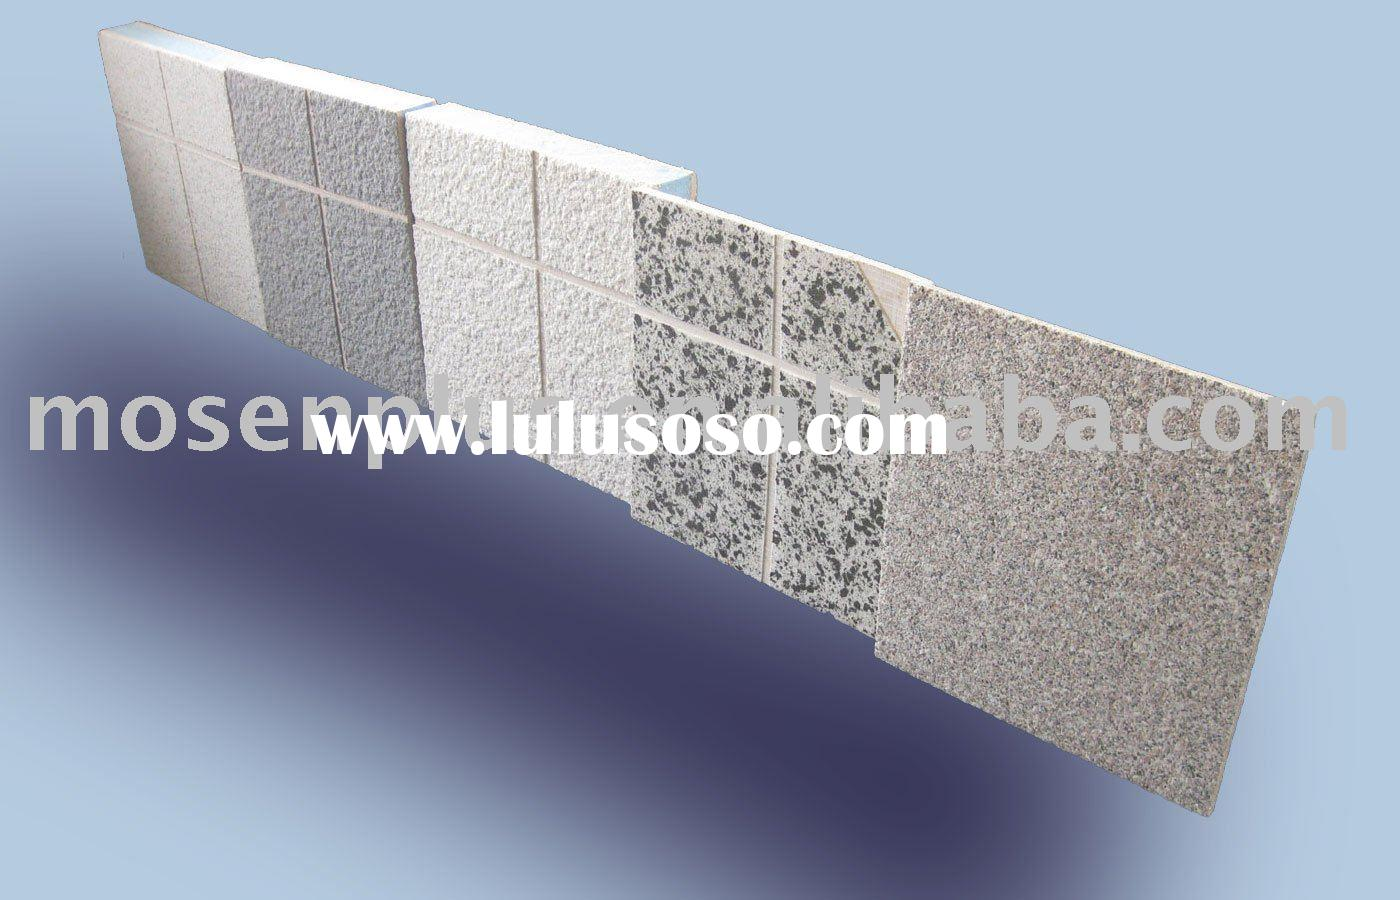 Grc Panels Usa : Wall panel eps manufacturers in lulusoso